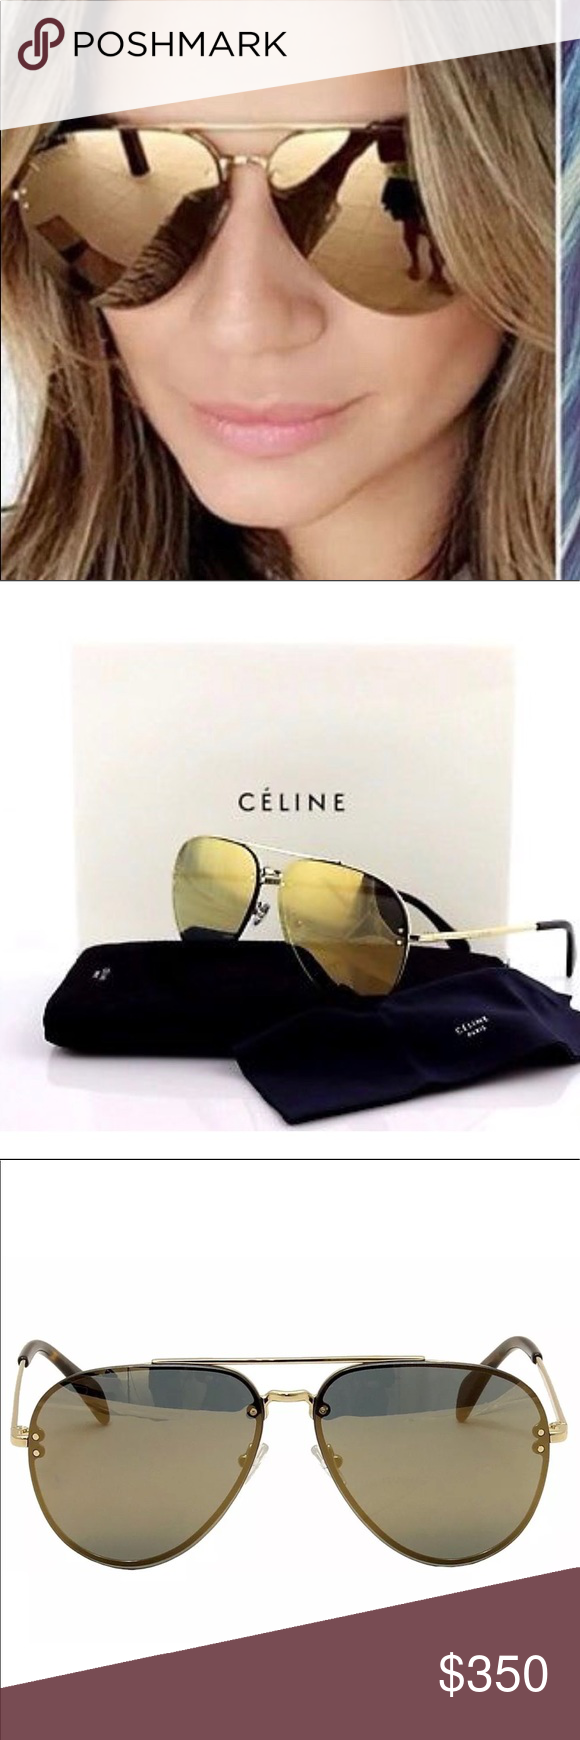 71178fb11db8 Brand New Celine Aviator Sunglassez Brand New Celine CL 41391S 41391 S J5G  MV